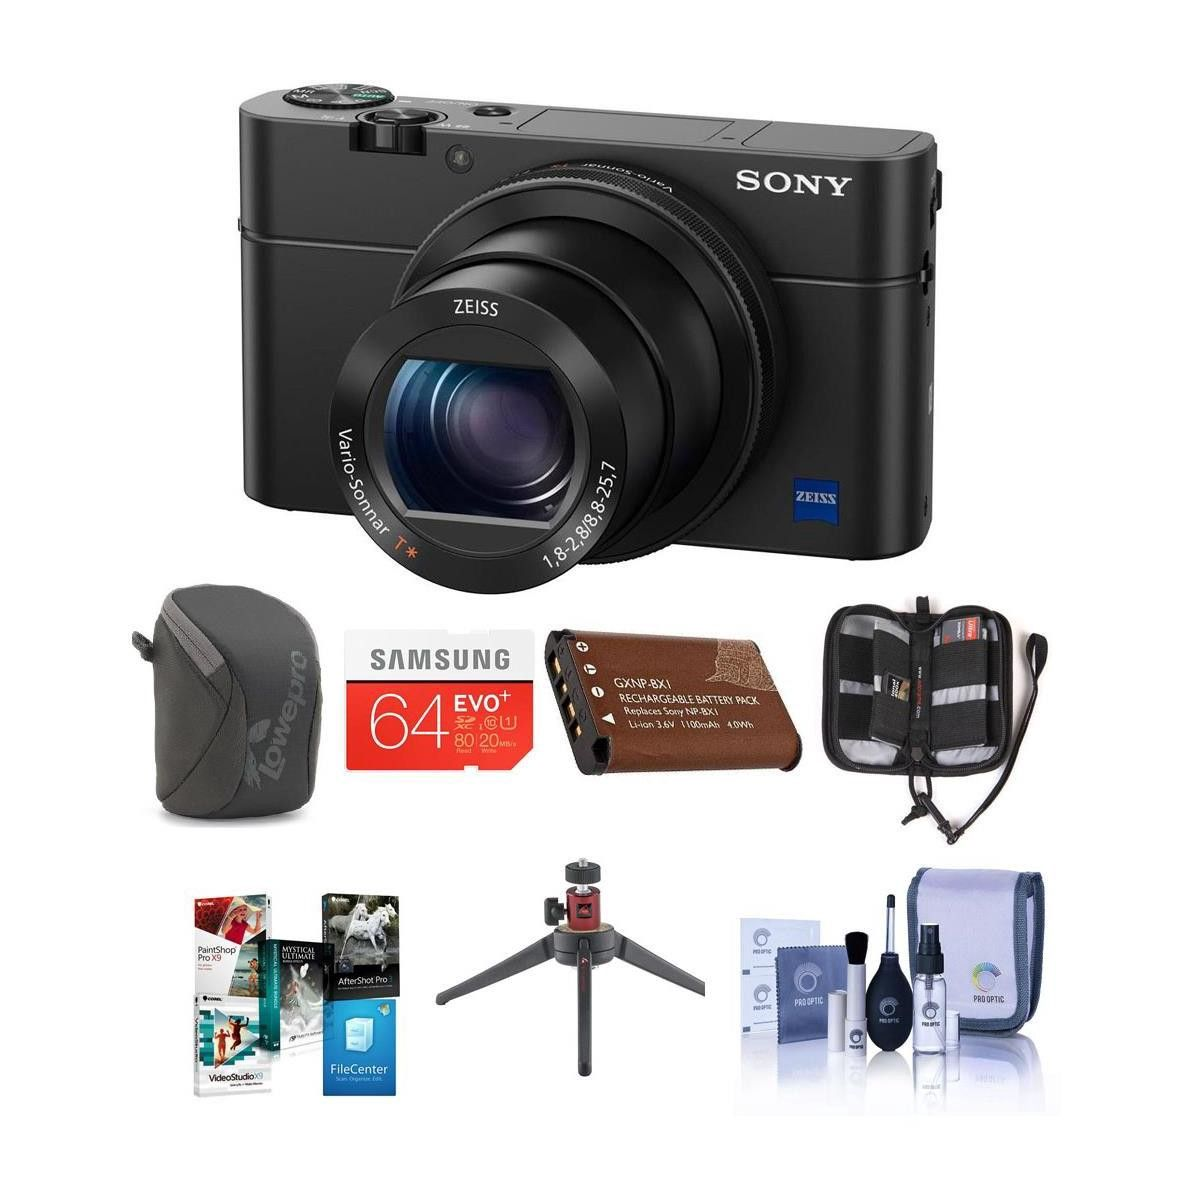 Sony Cyber Shot Dsc Rx100 Iv Digital Camera And Premium Kit Bundle Compact M4 Green